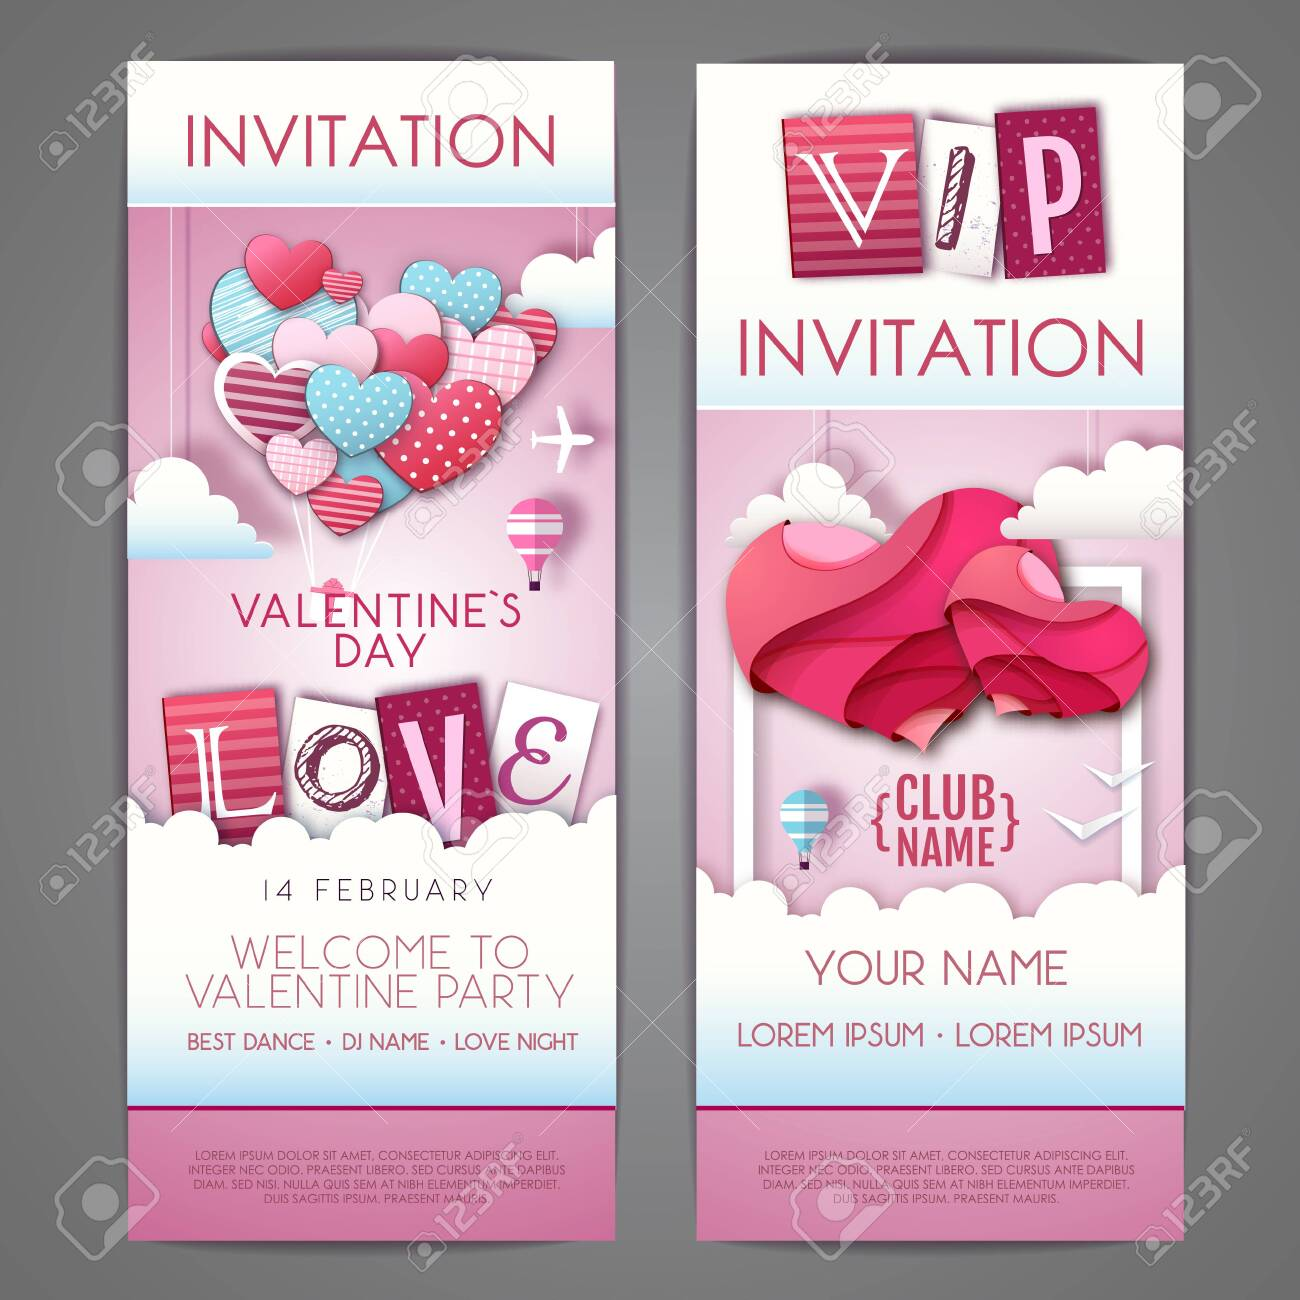 Happy Valentines day invitation design with love hearts in the sky. Cut out paper art style design - 136378870